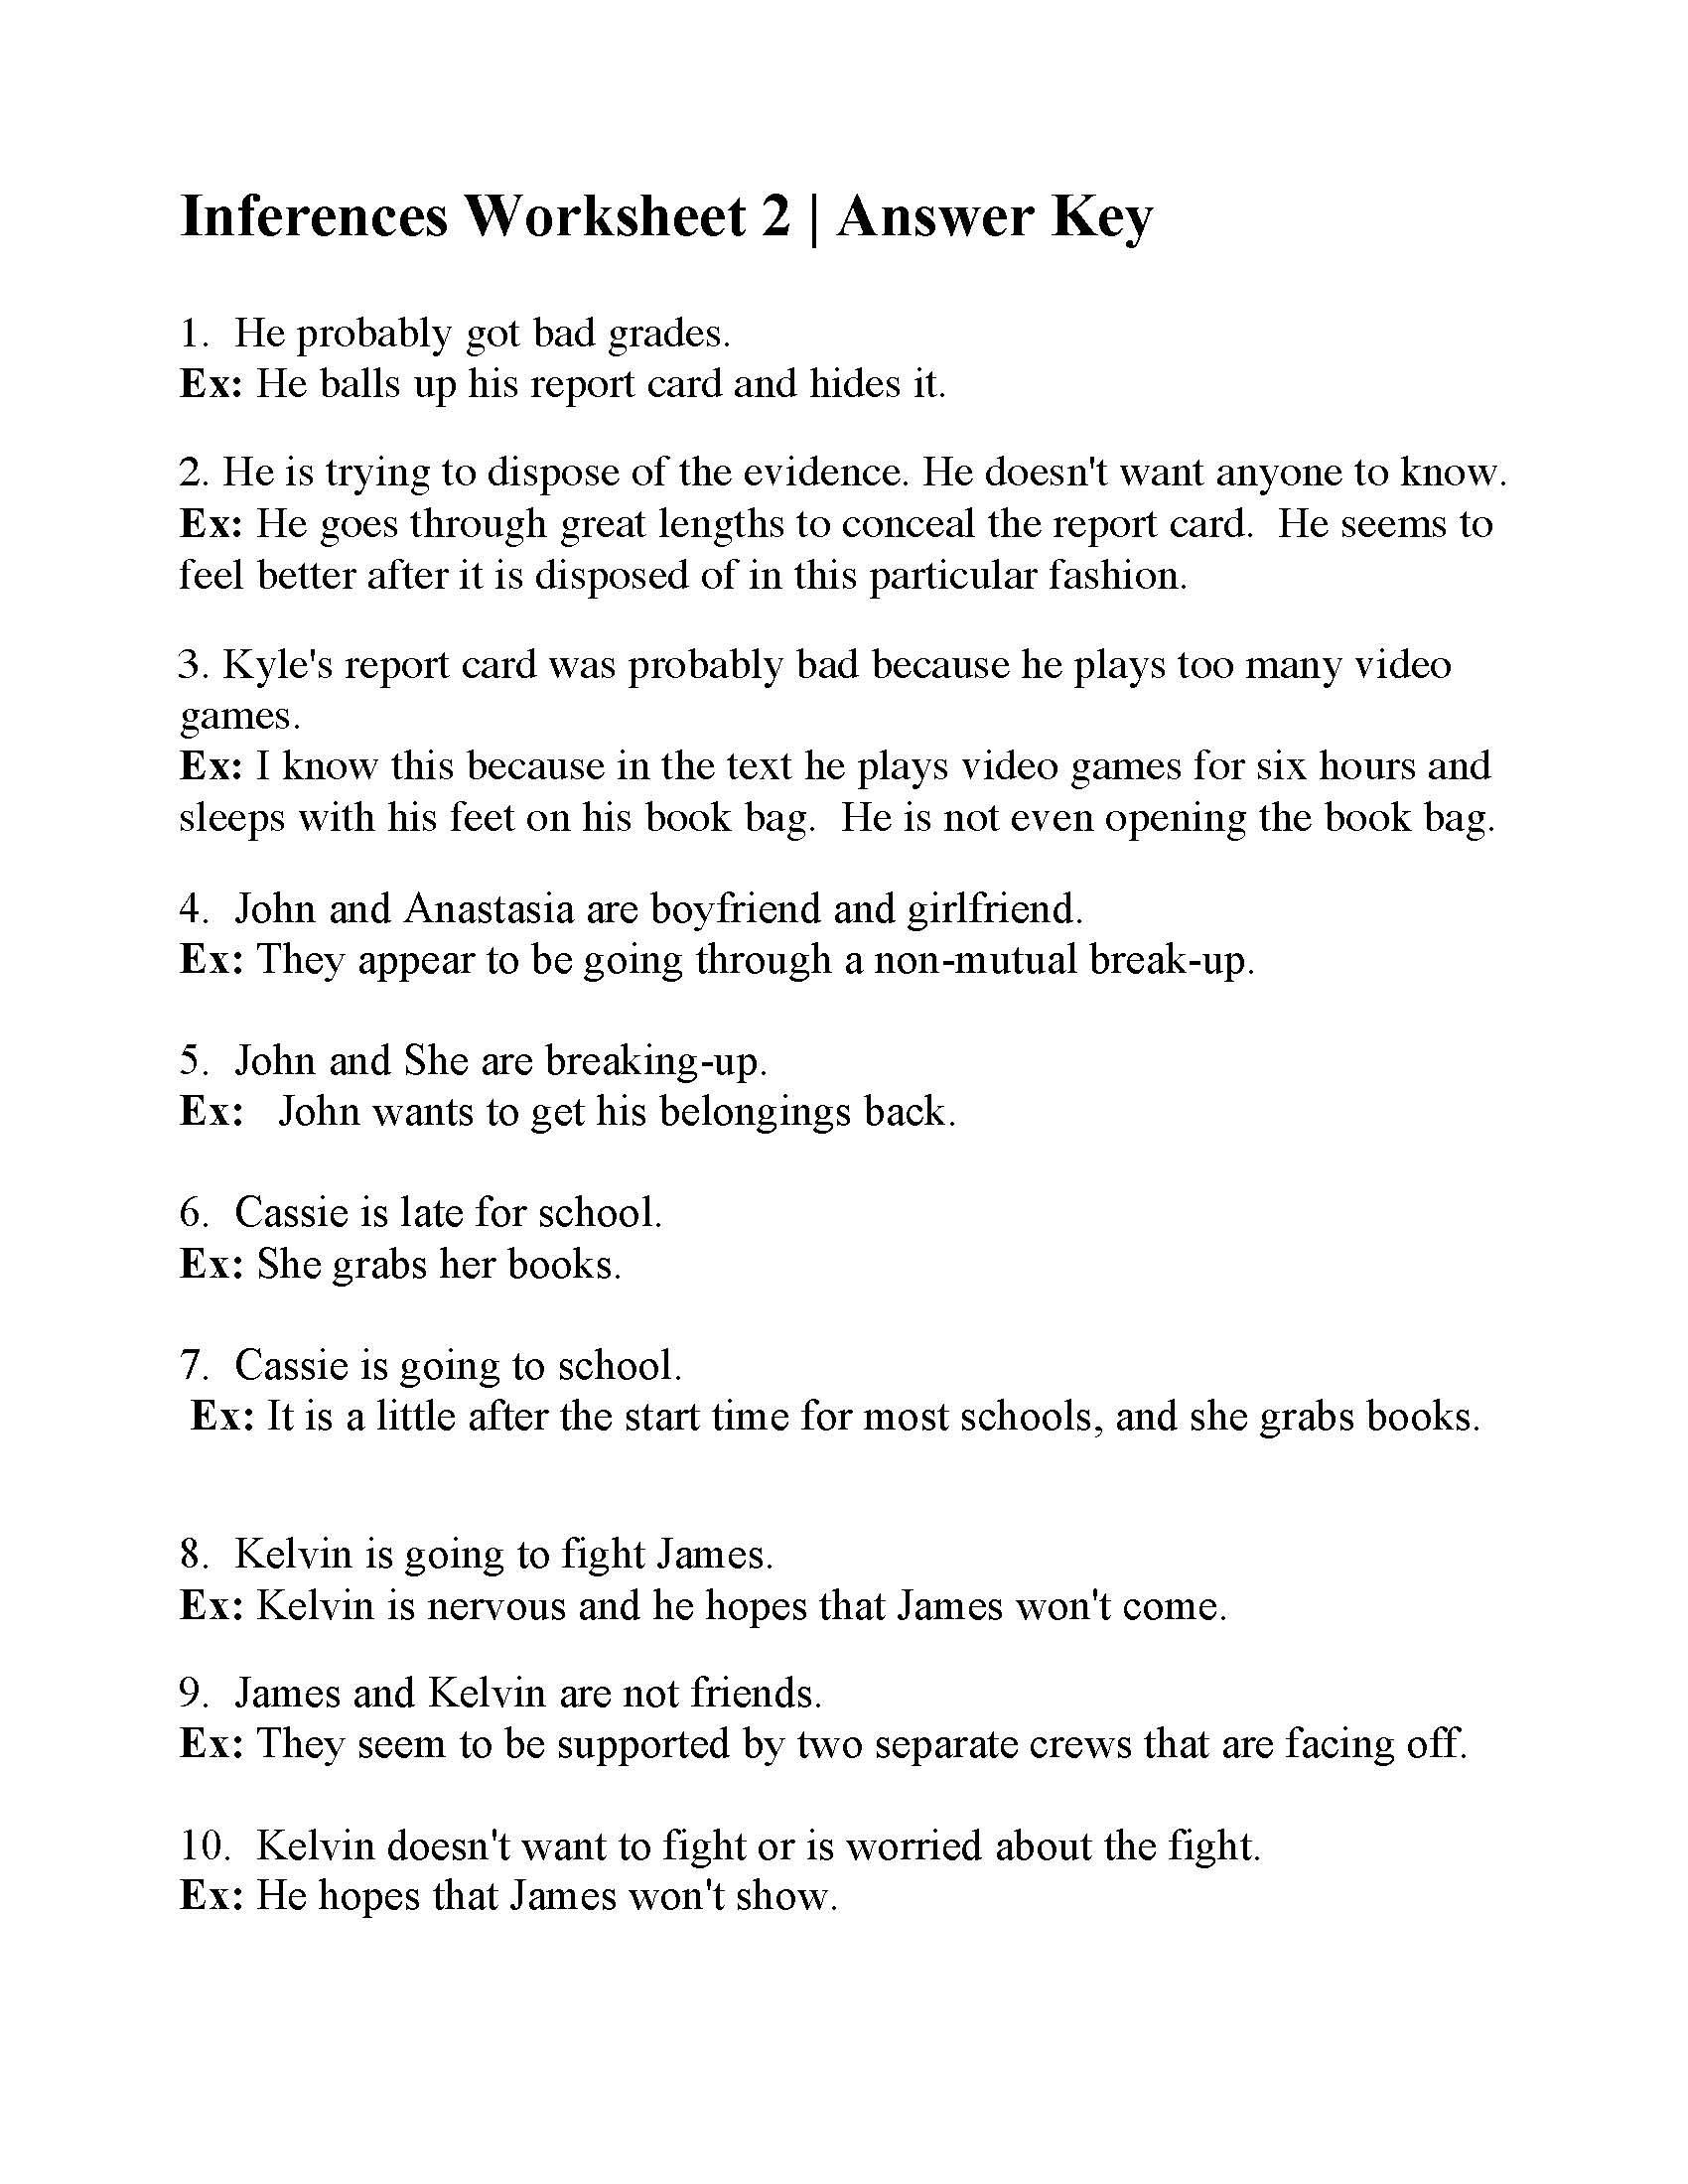 4th Grade Inferencing Worksheets Pin On Worksheet Fun